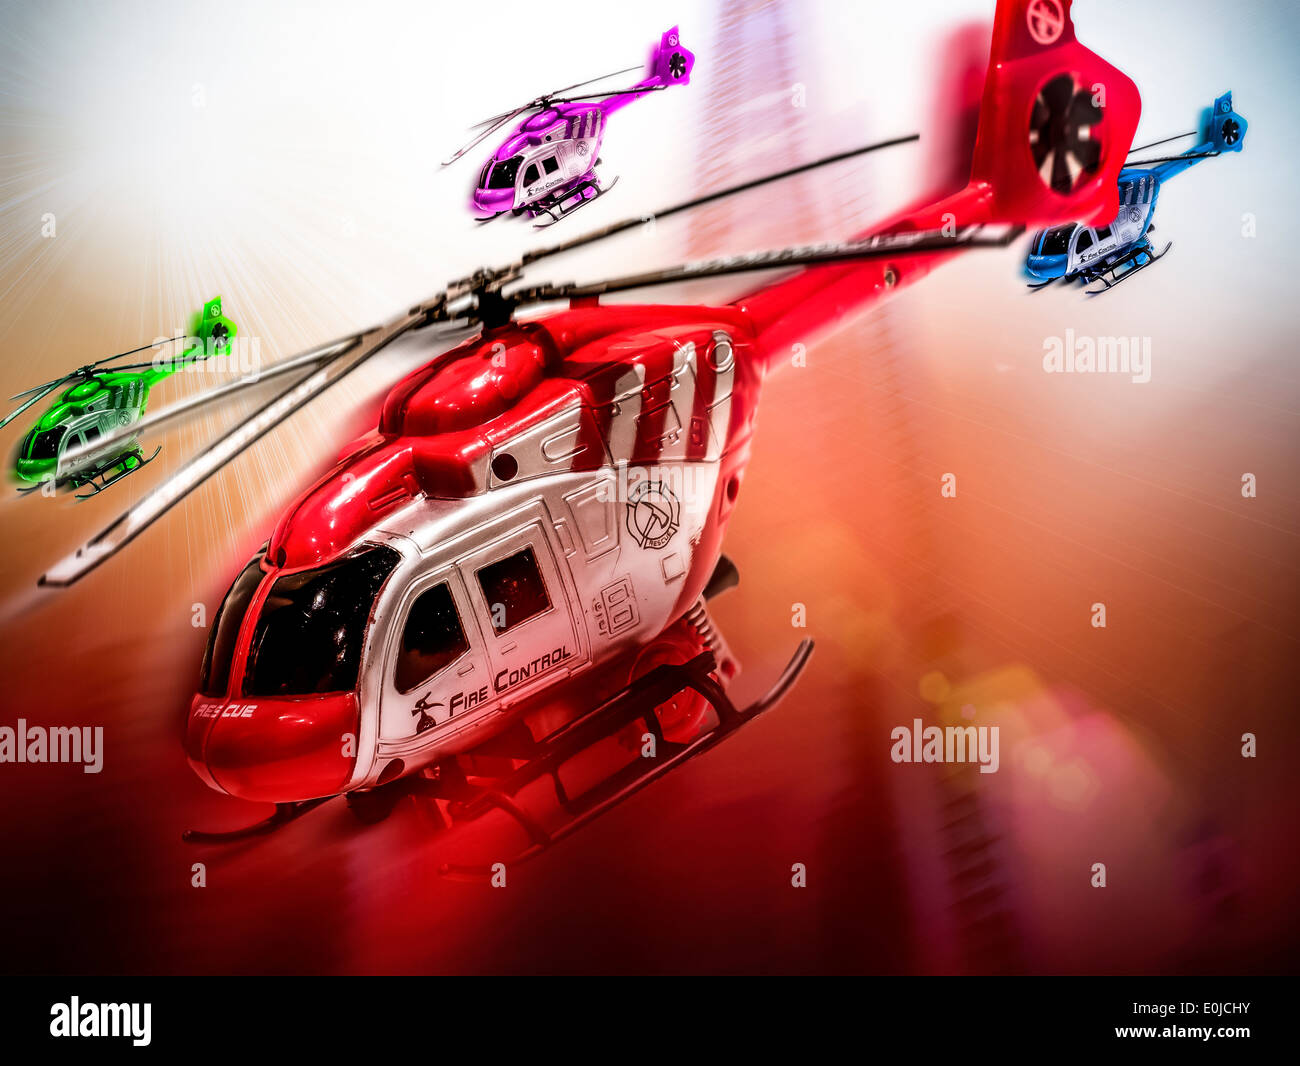 Toy Helicopter - Stock Image